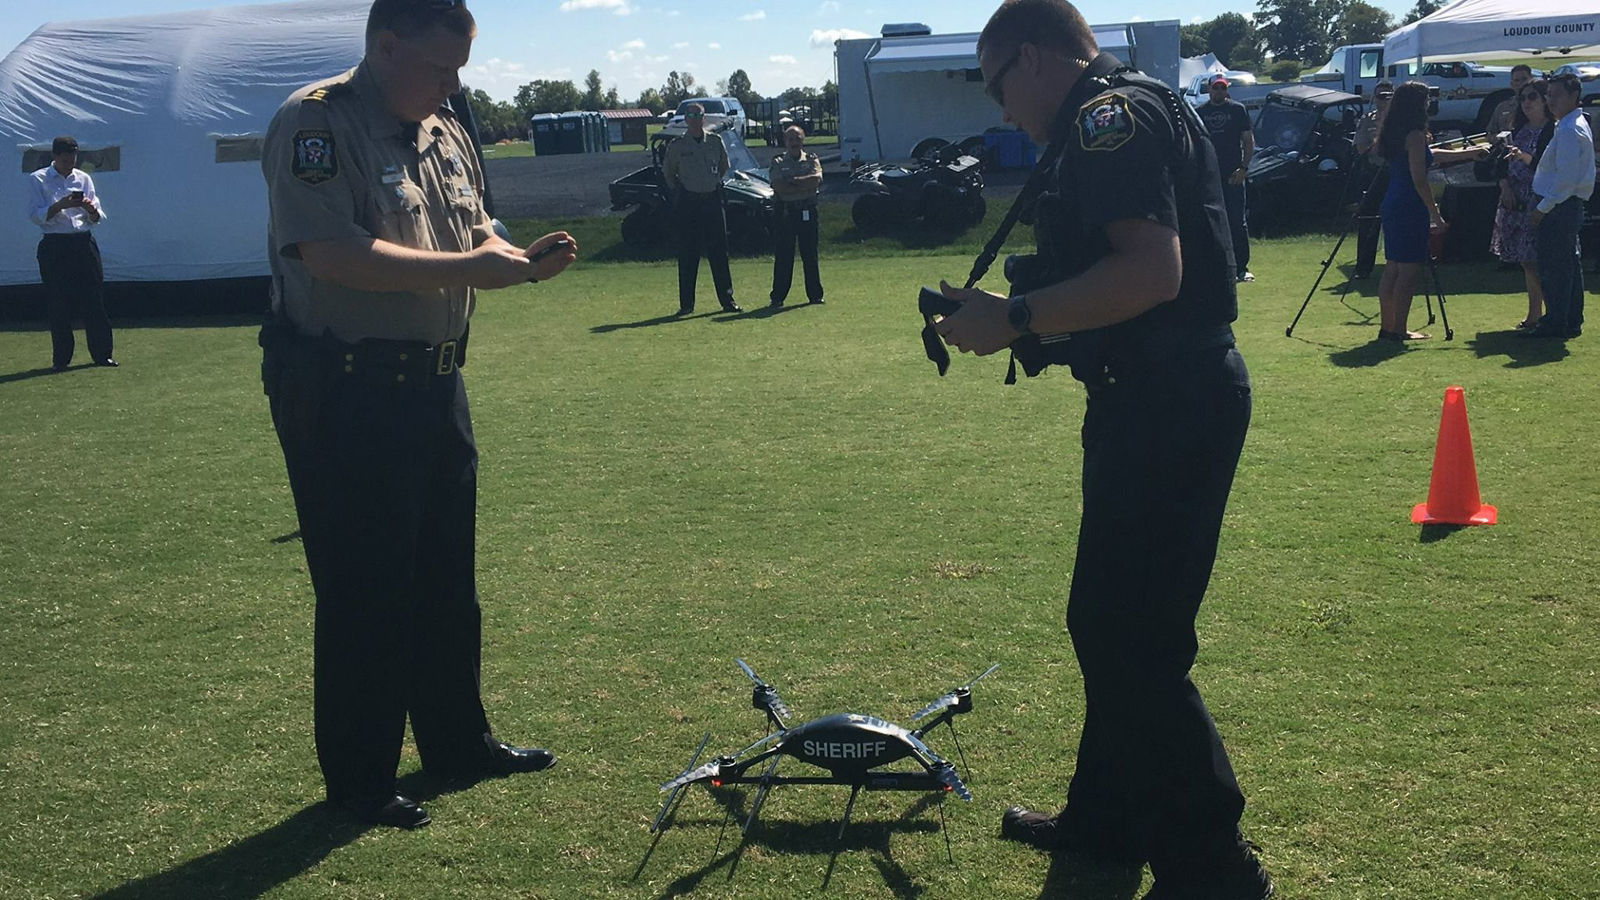 Officers with the Loundoun County Sheriff's Office test out a drone the deparment purchased as part of the county's Operation Lifesaver program. (Courtesy Loudoun County Sheriff's Office)